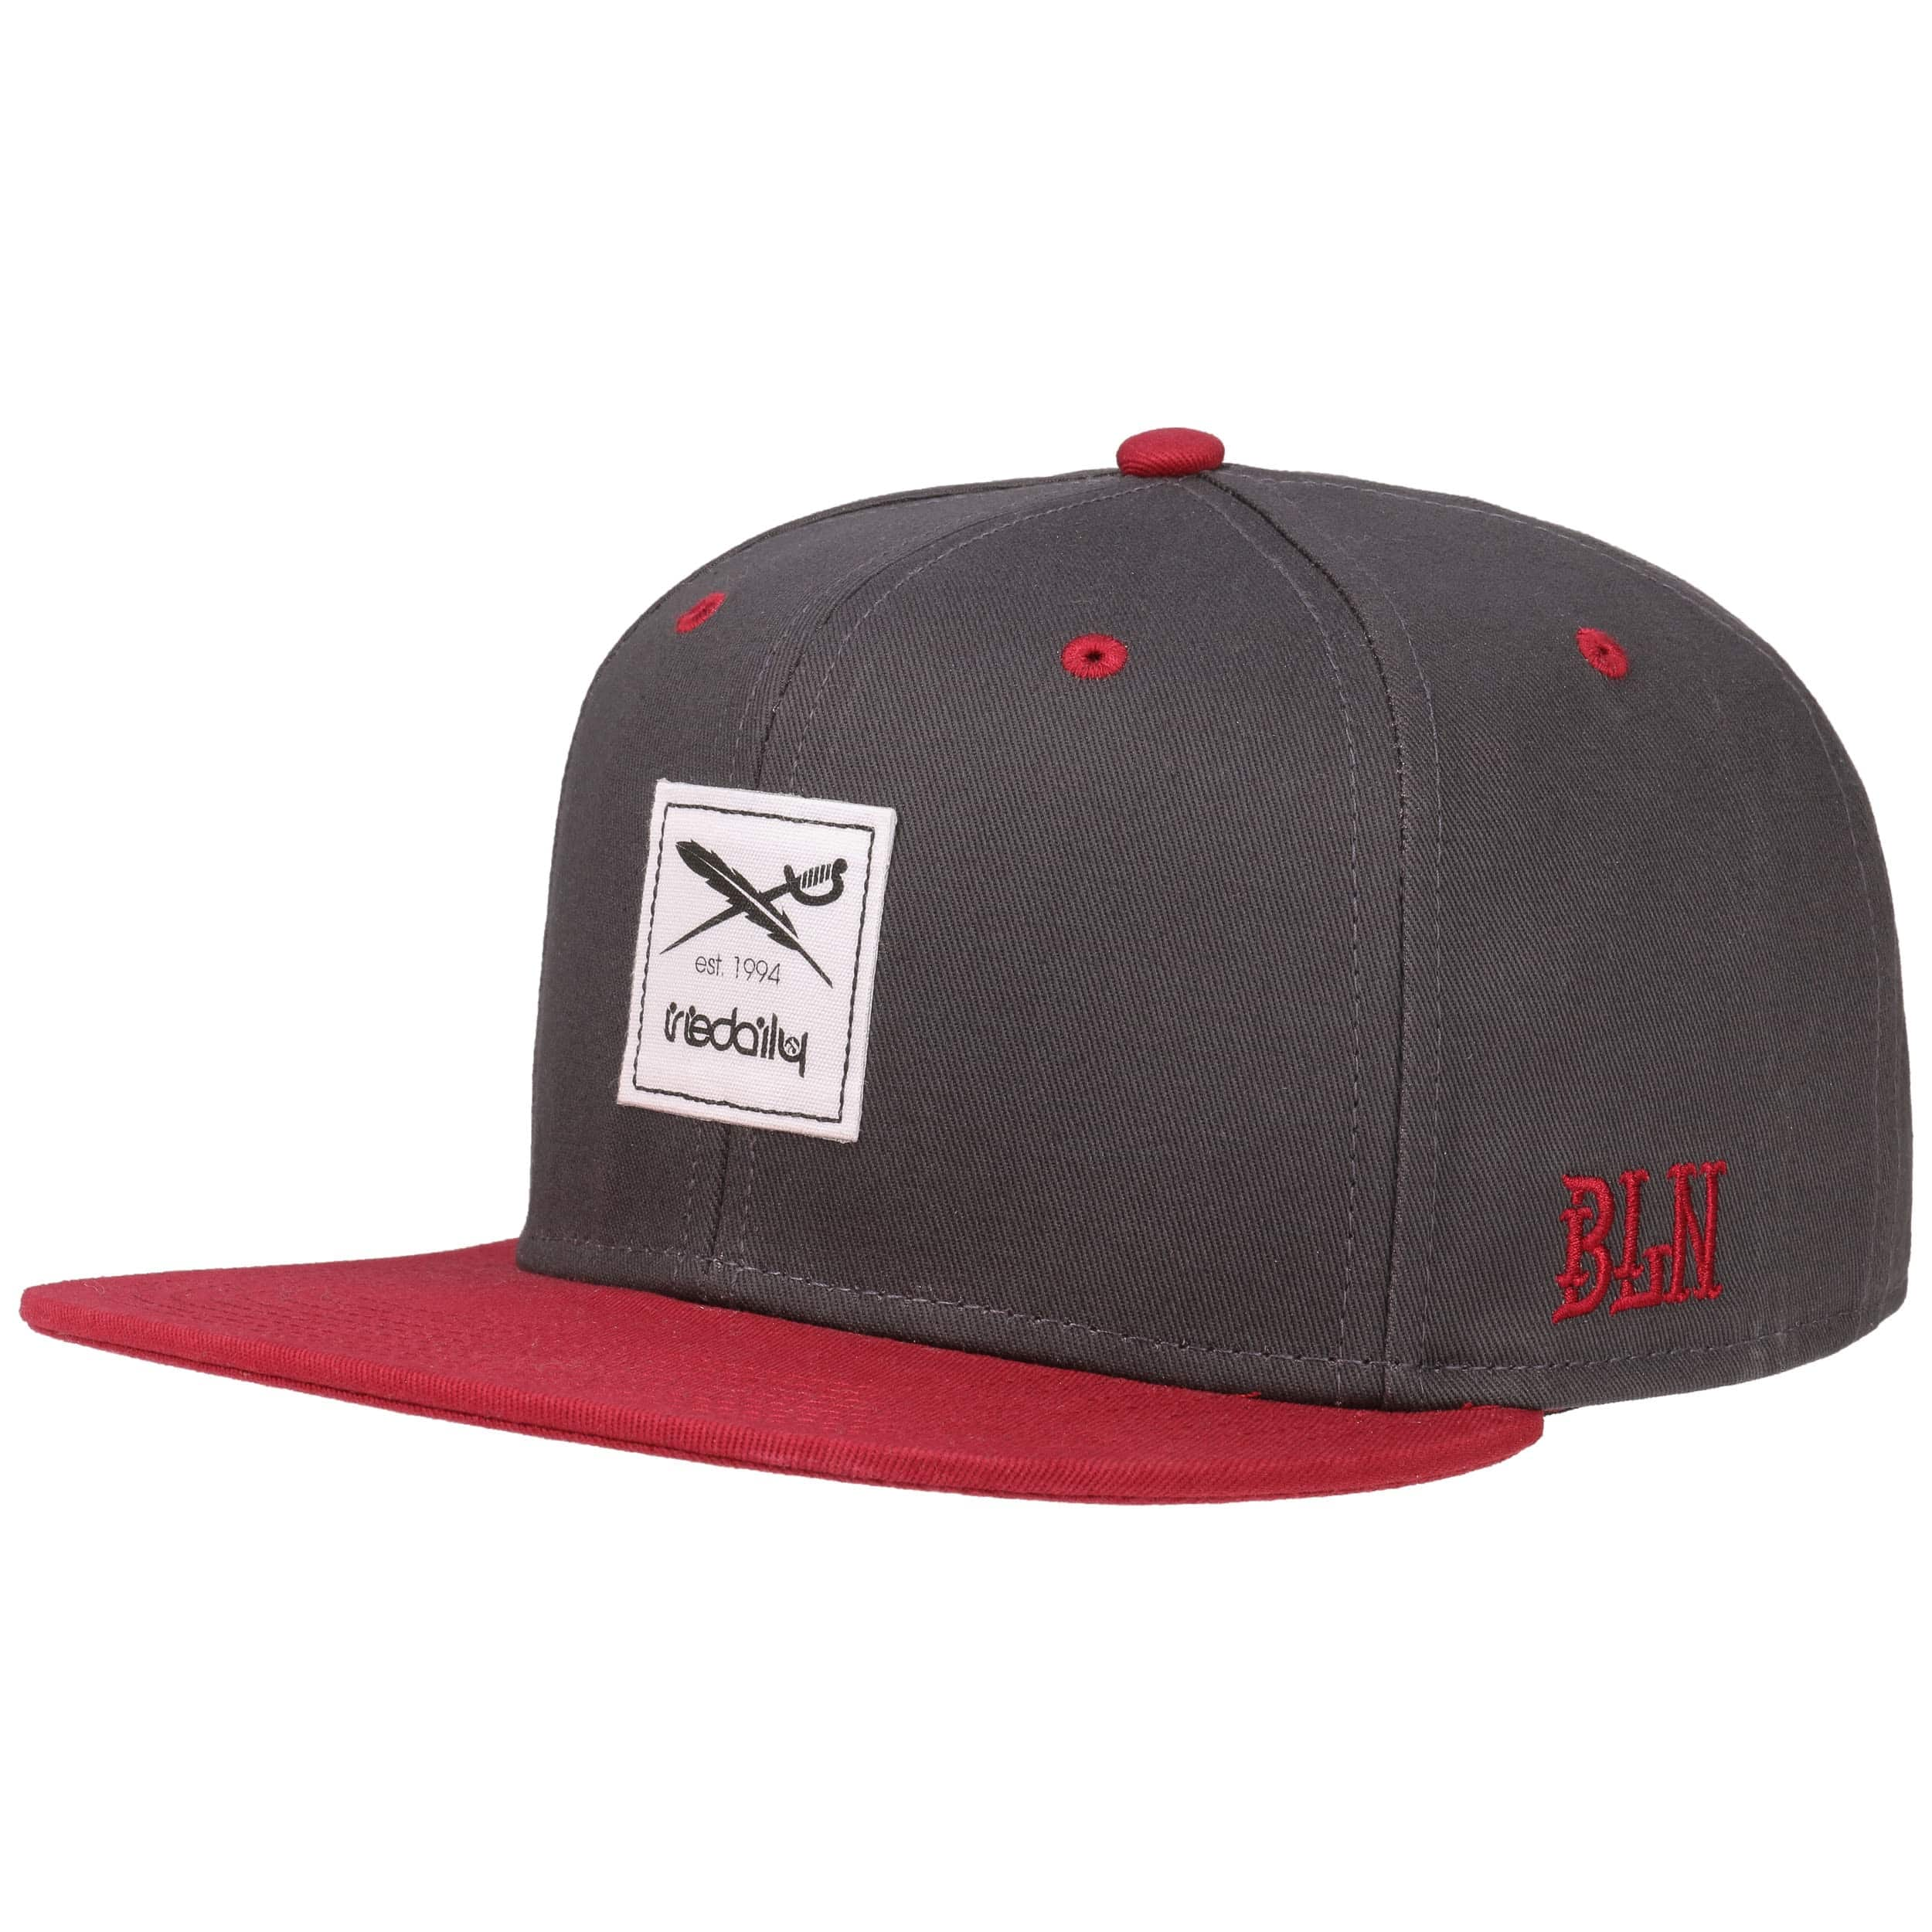 a298f686b5a ... Daily Contra Snapback Cap by iriedaily - anthracite 6 ...